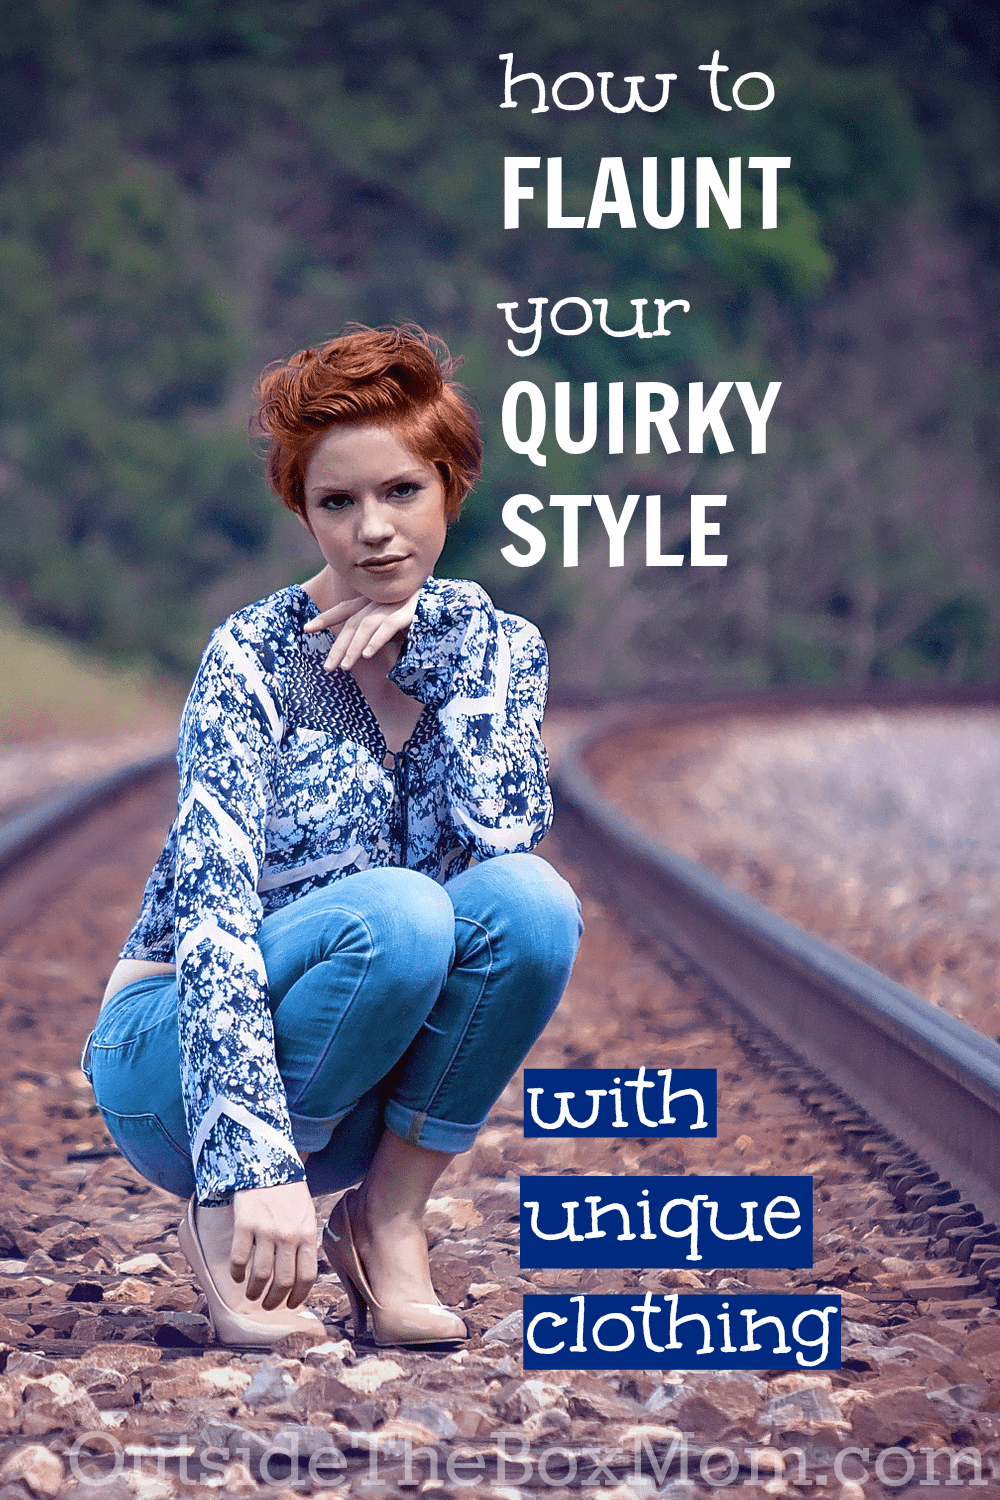 Do you want to be one of those women who is a design trendsetter with a unique style, instead of being a fashionable follower? Here are 8 quick and easy ways to dress with unique clothing and show off your quirky style. | OutsideTheBoxMom.com